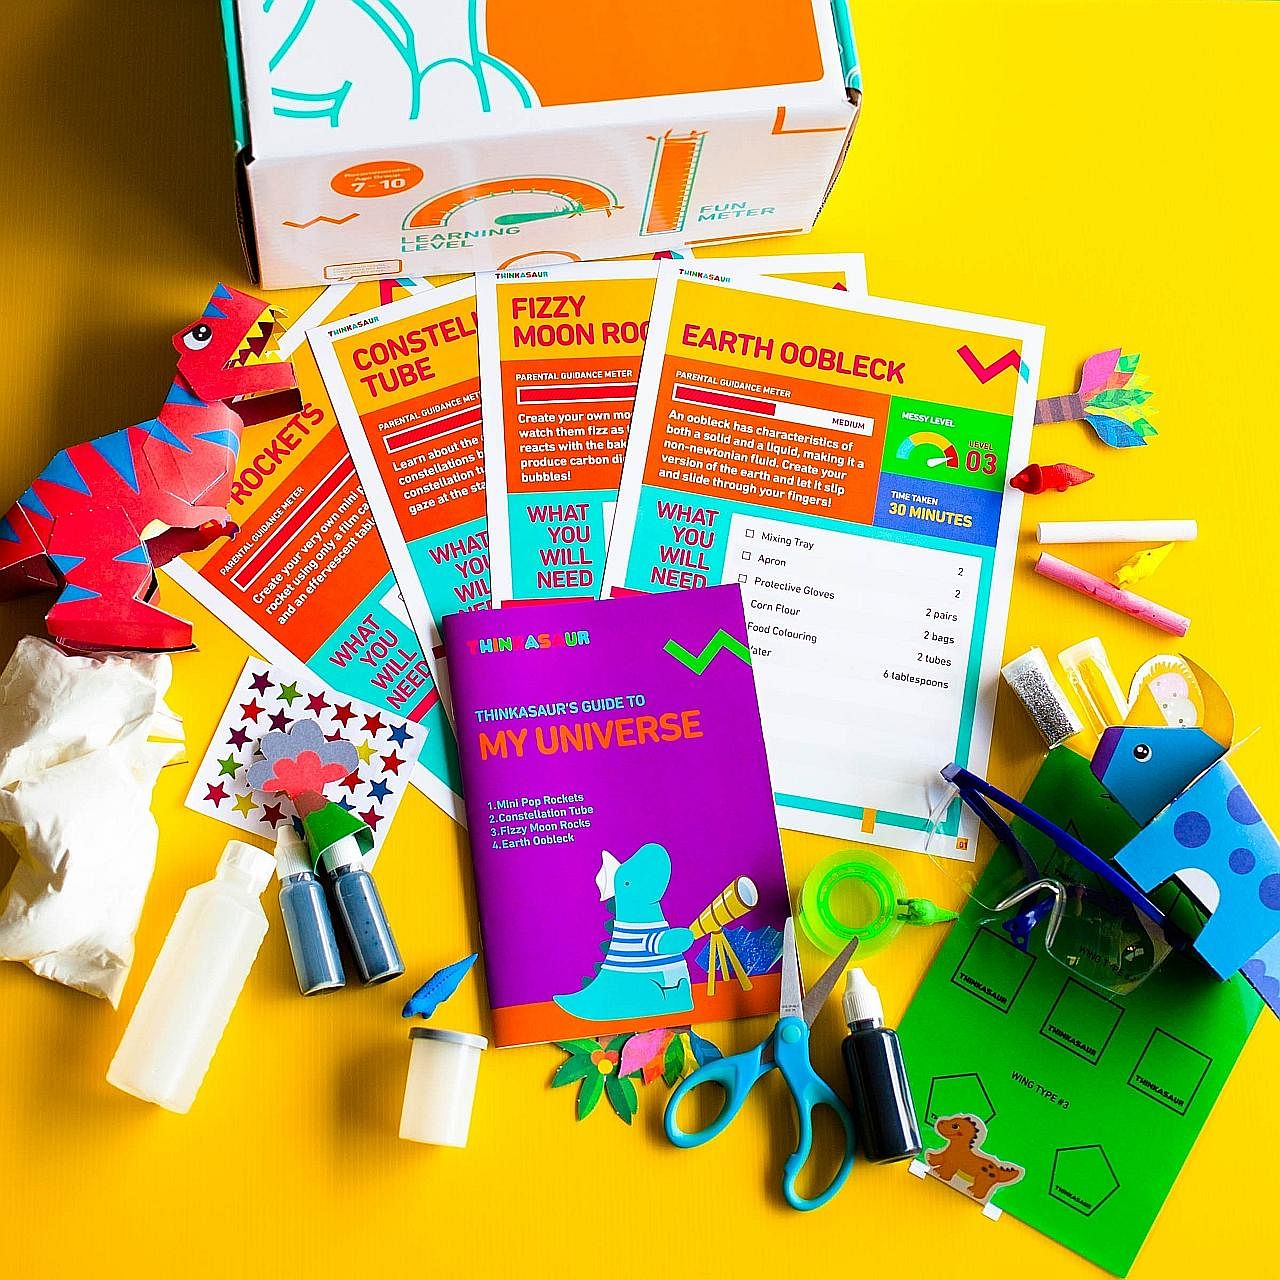 The materials in EllieFun boxes incorporate Montessori-based ideas and principles. Thinkasaur boxes contain content that aims to make science fun for children. The boxes from My Messy Box contain materials that allow the child to engage in sensory pl